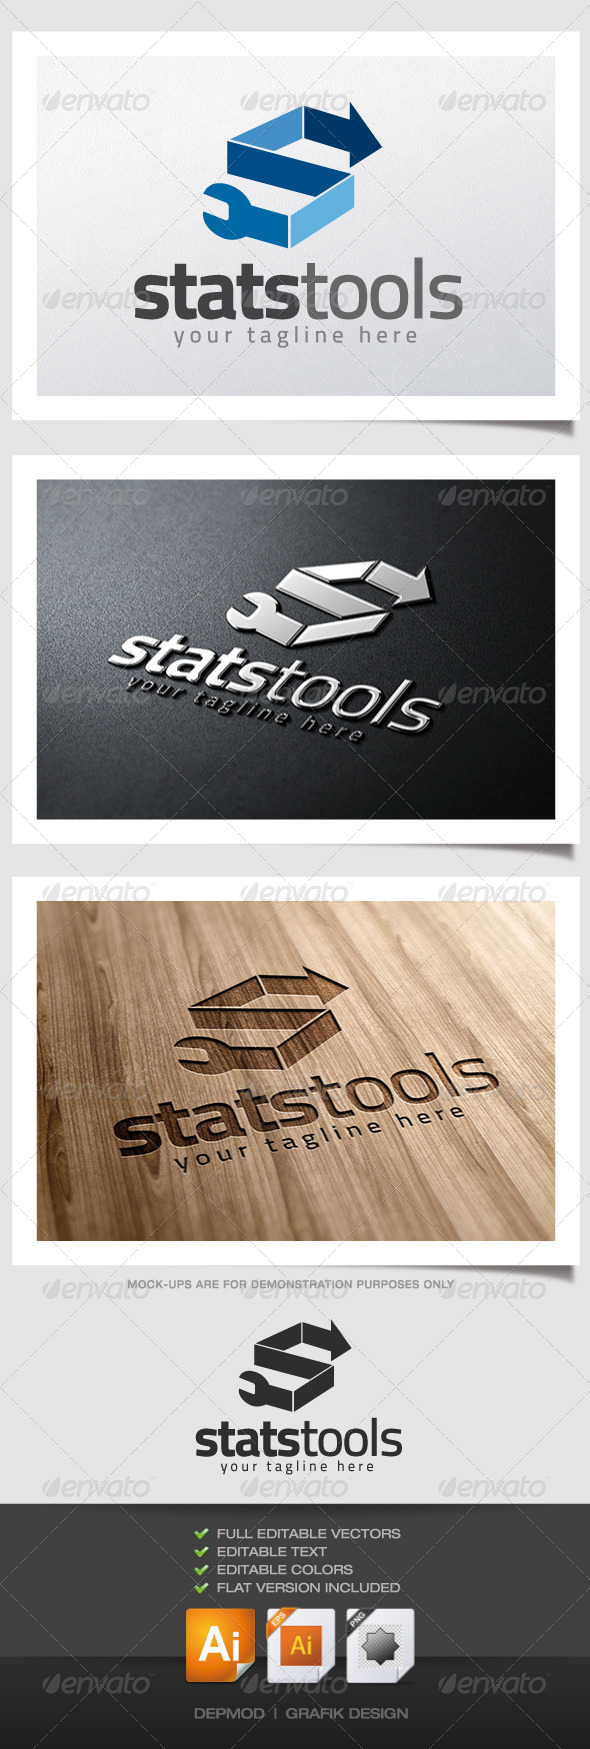 GraphicRiver Stats Tools Logo 4722728